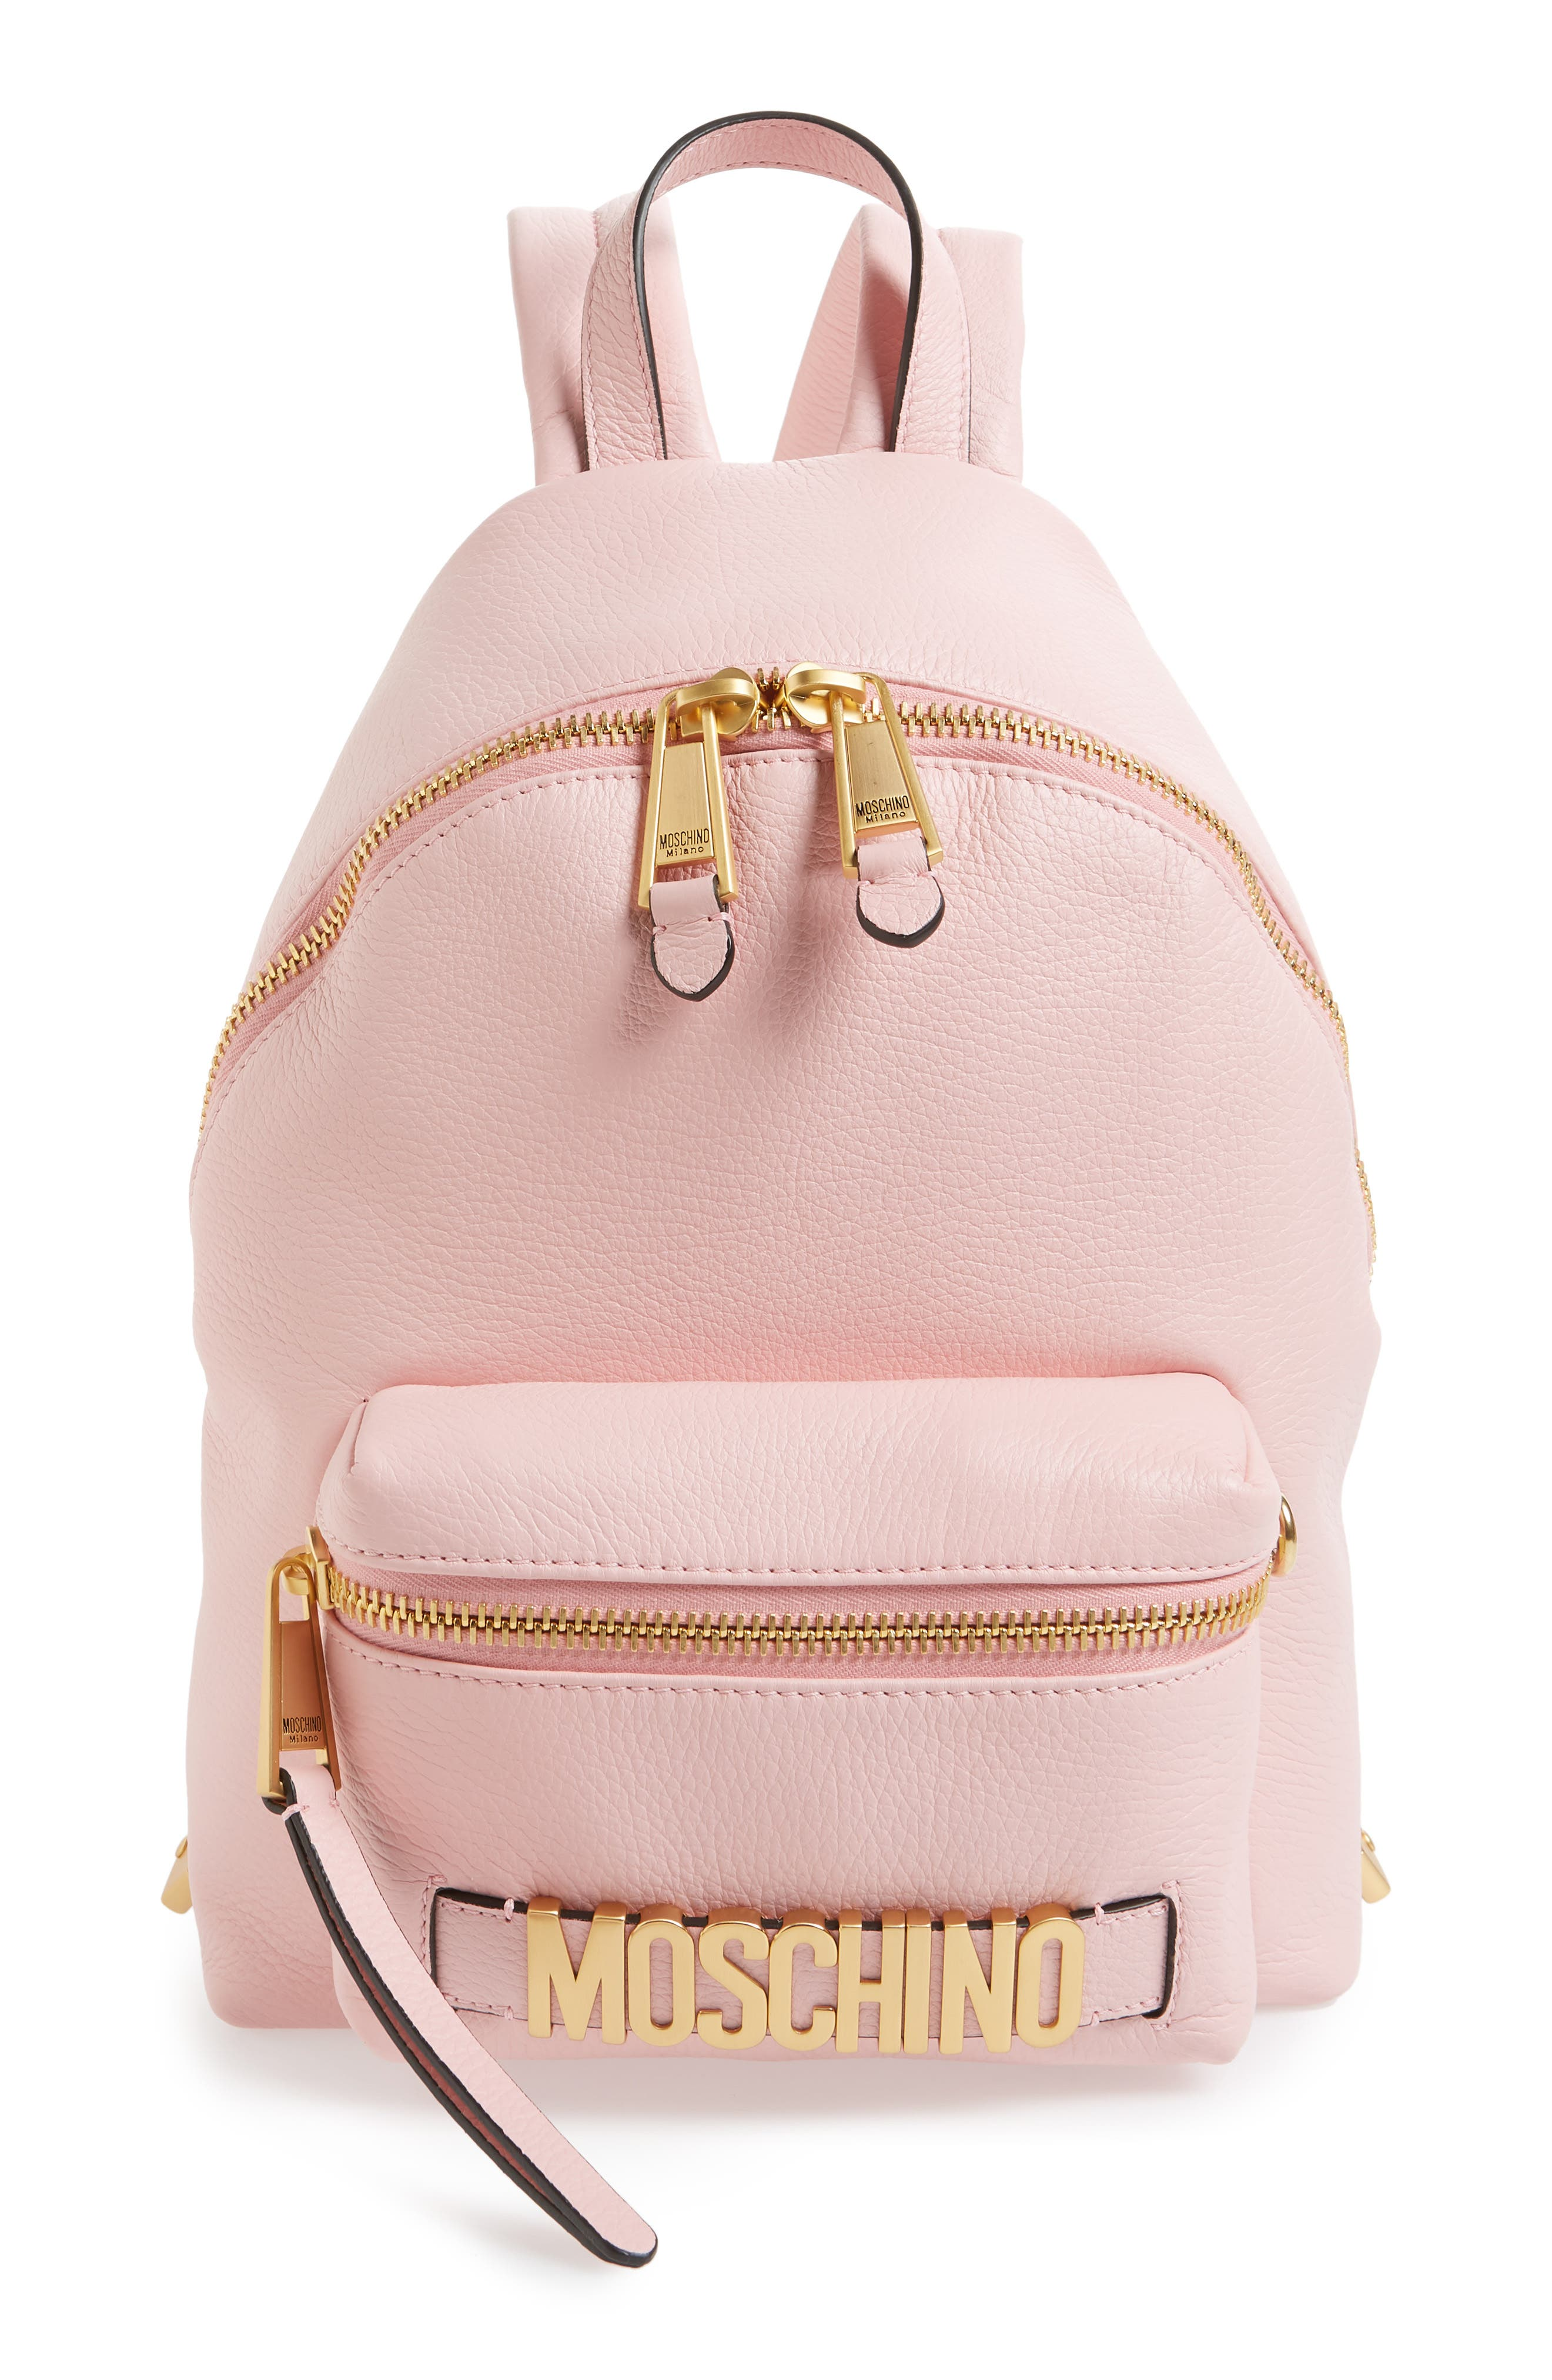 MOSCHINO Logo Leather Backpack, Main, color, PINK